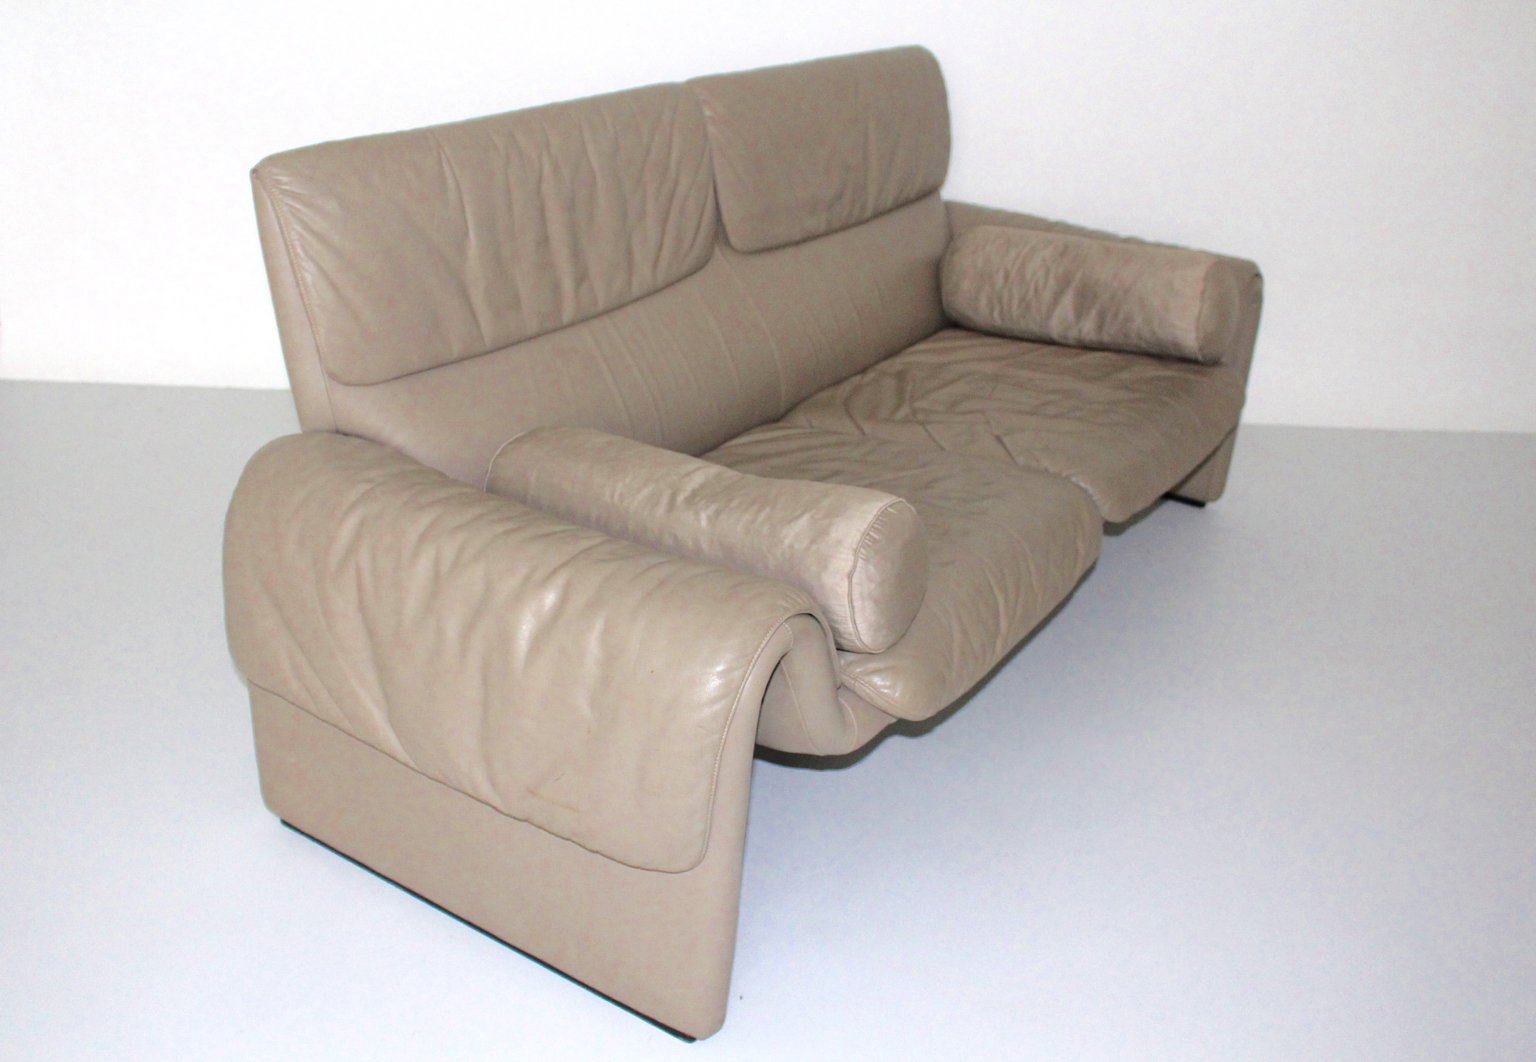 de sede sofa vintage kuka hong kong ds 2011 leather from 1980s for sale